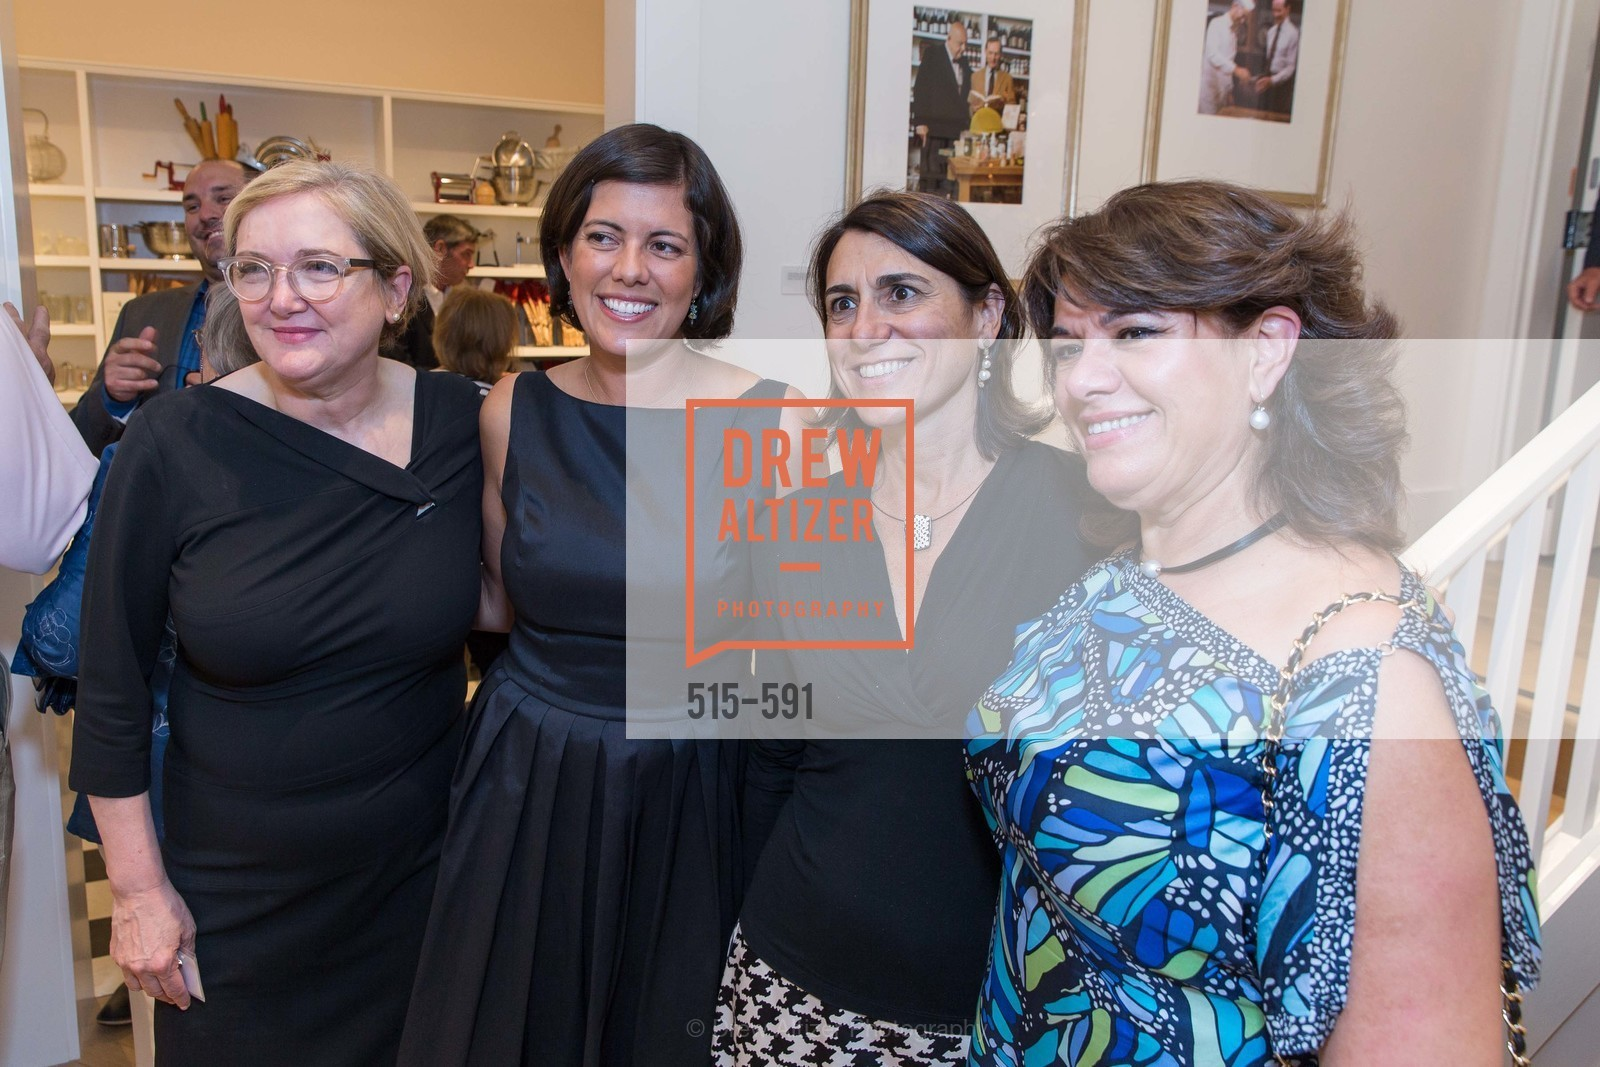 Jean Anderson, Maria Reilly, Eva Bertran, Junny Gonzalez, CHUCK WILLIAMS Birthday Celebration, US, October 2nd, 2014,Drew Altizer, Drew Altizer Photography, full-service agency, private events, San Francisco photographer, photographer california